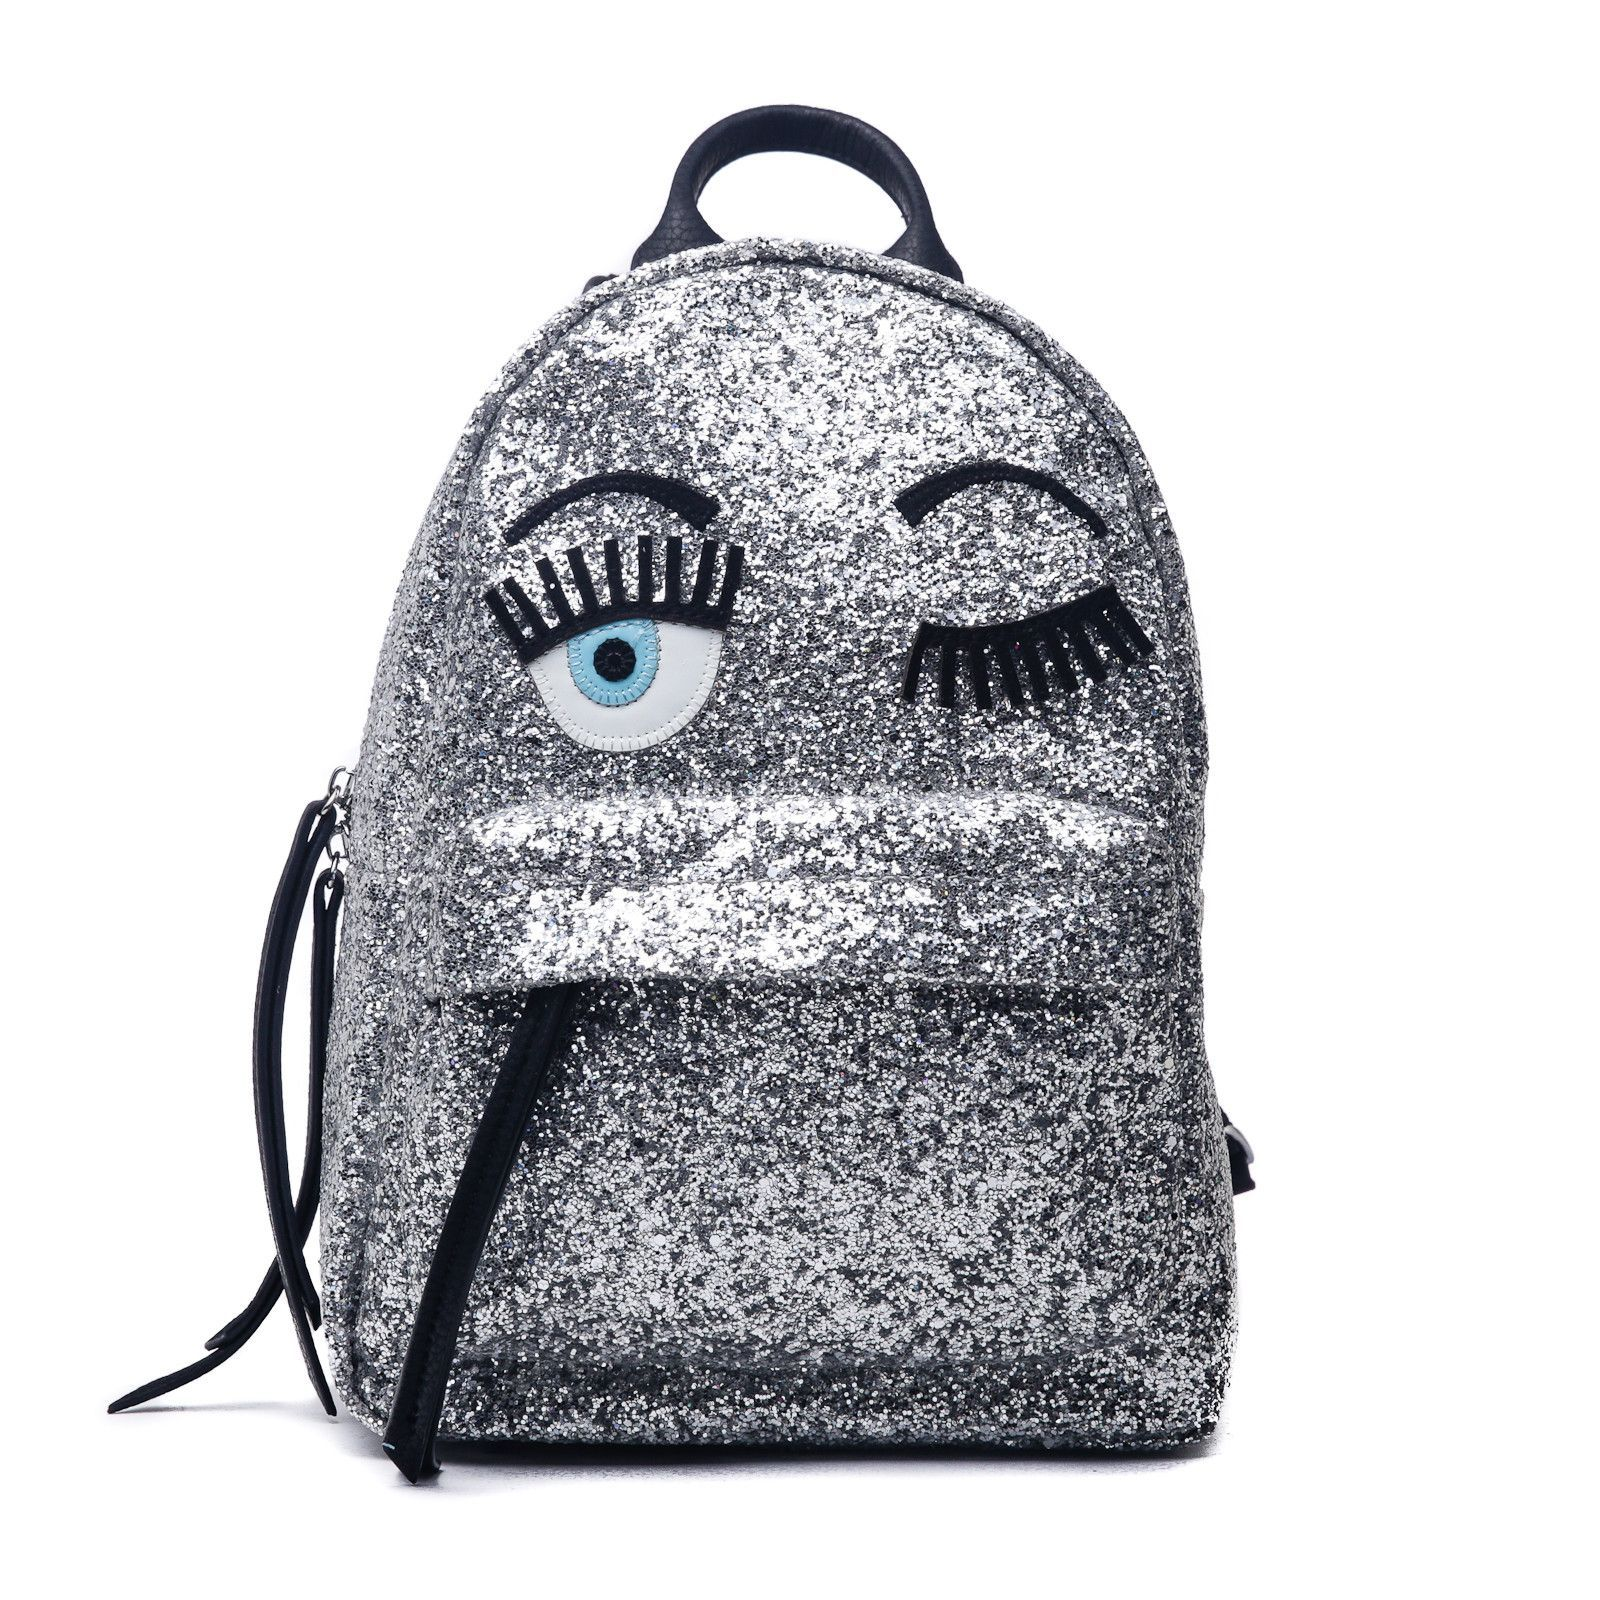 Step into the new season in style with this adorable mini backpack from the… 6124554c6f90d